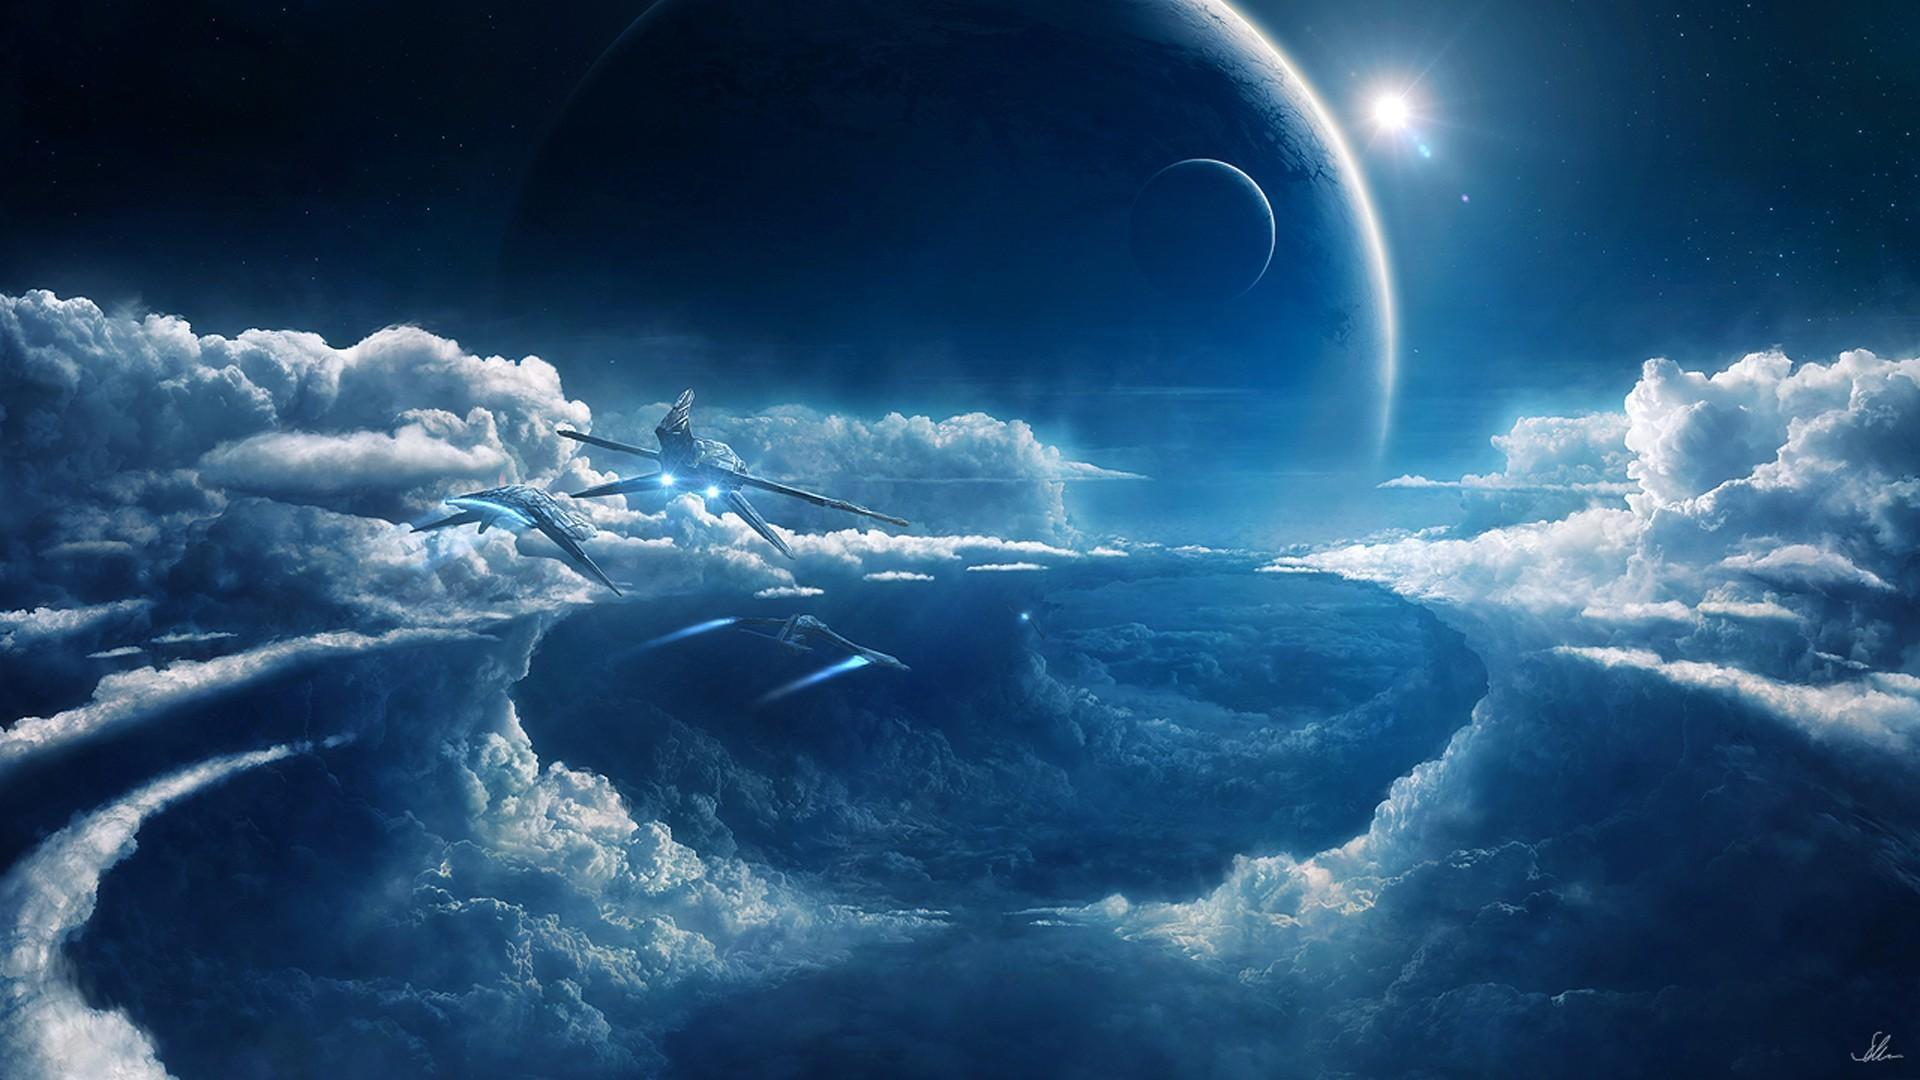 Outer space planets prometheus wallpapers